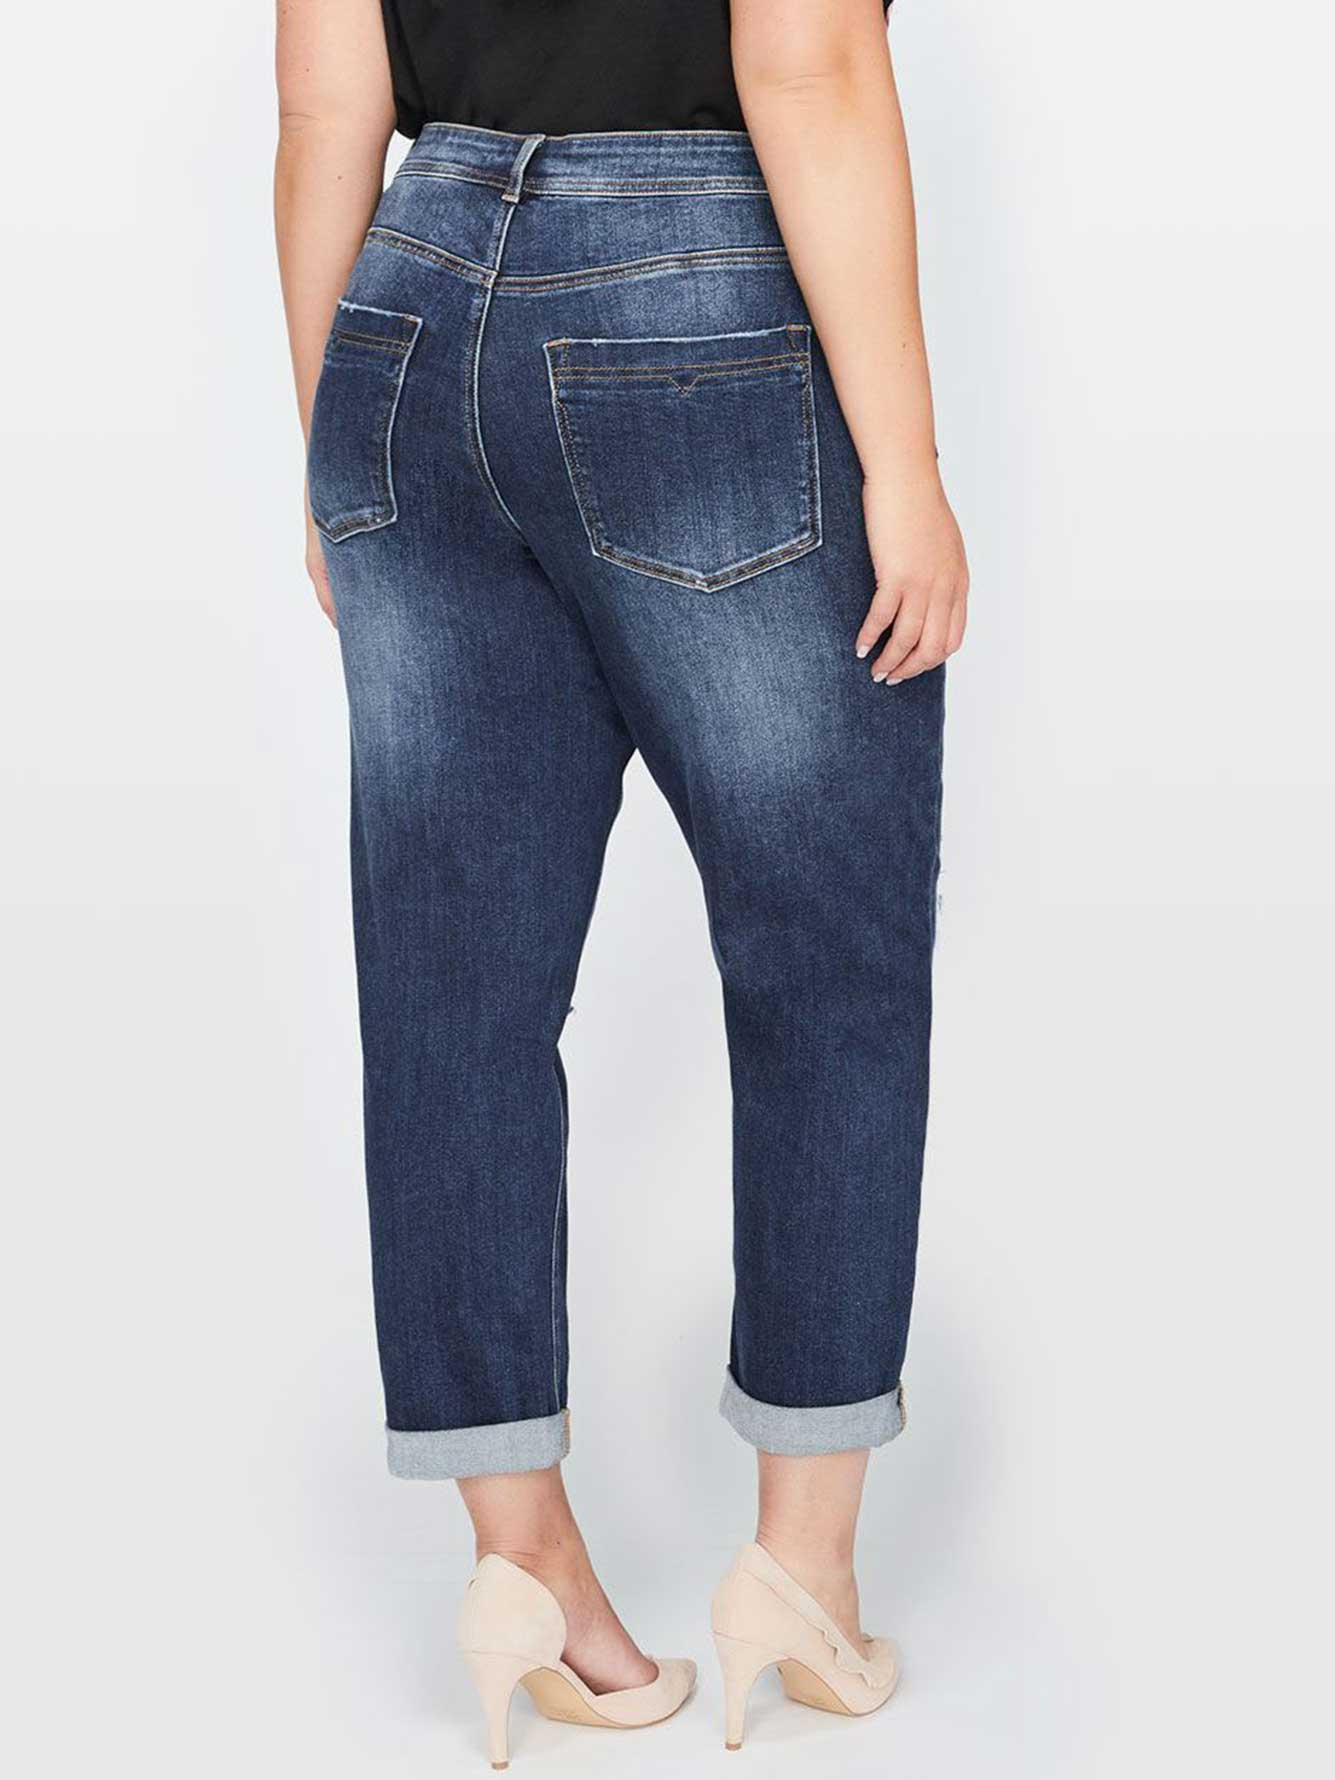 L&L Boyfriend Denim With Rips and Pearls